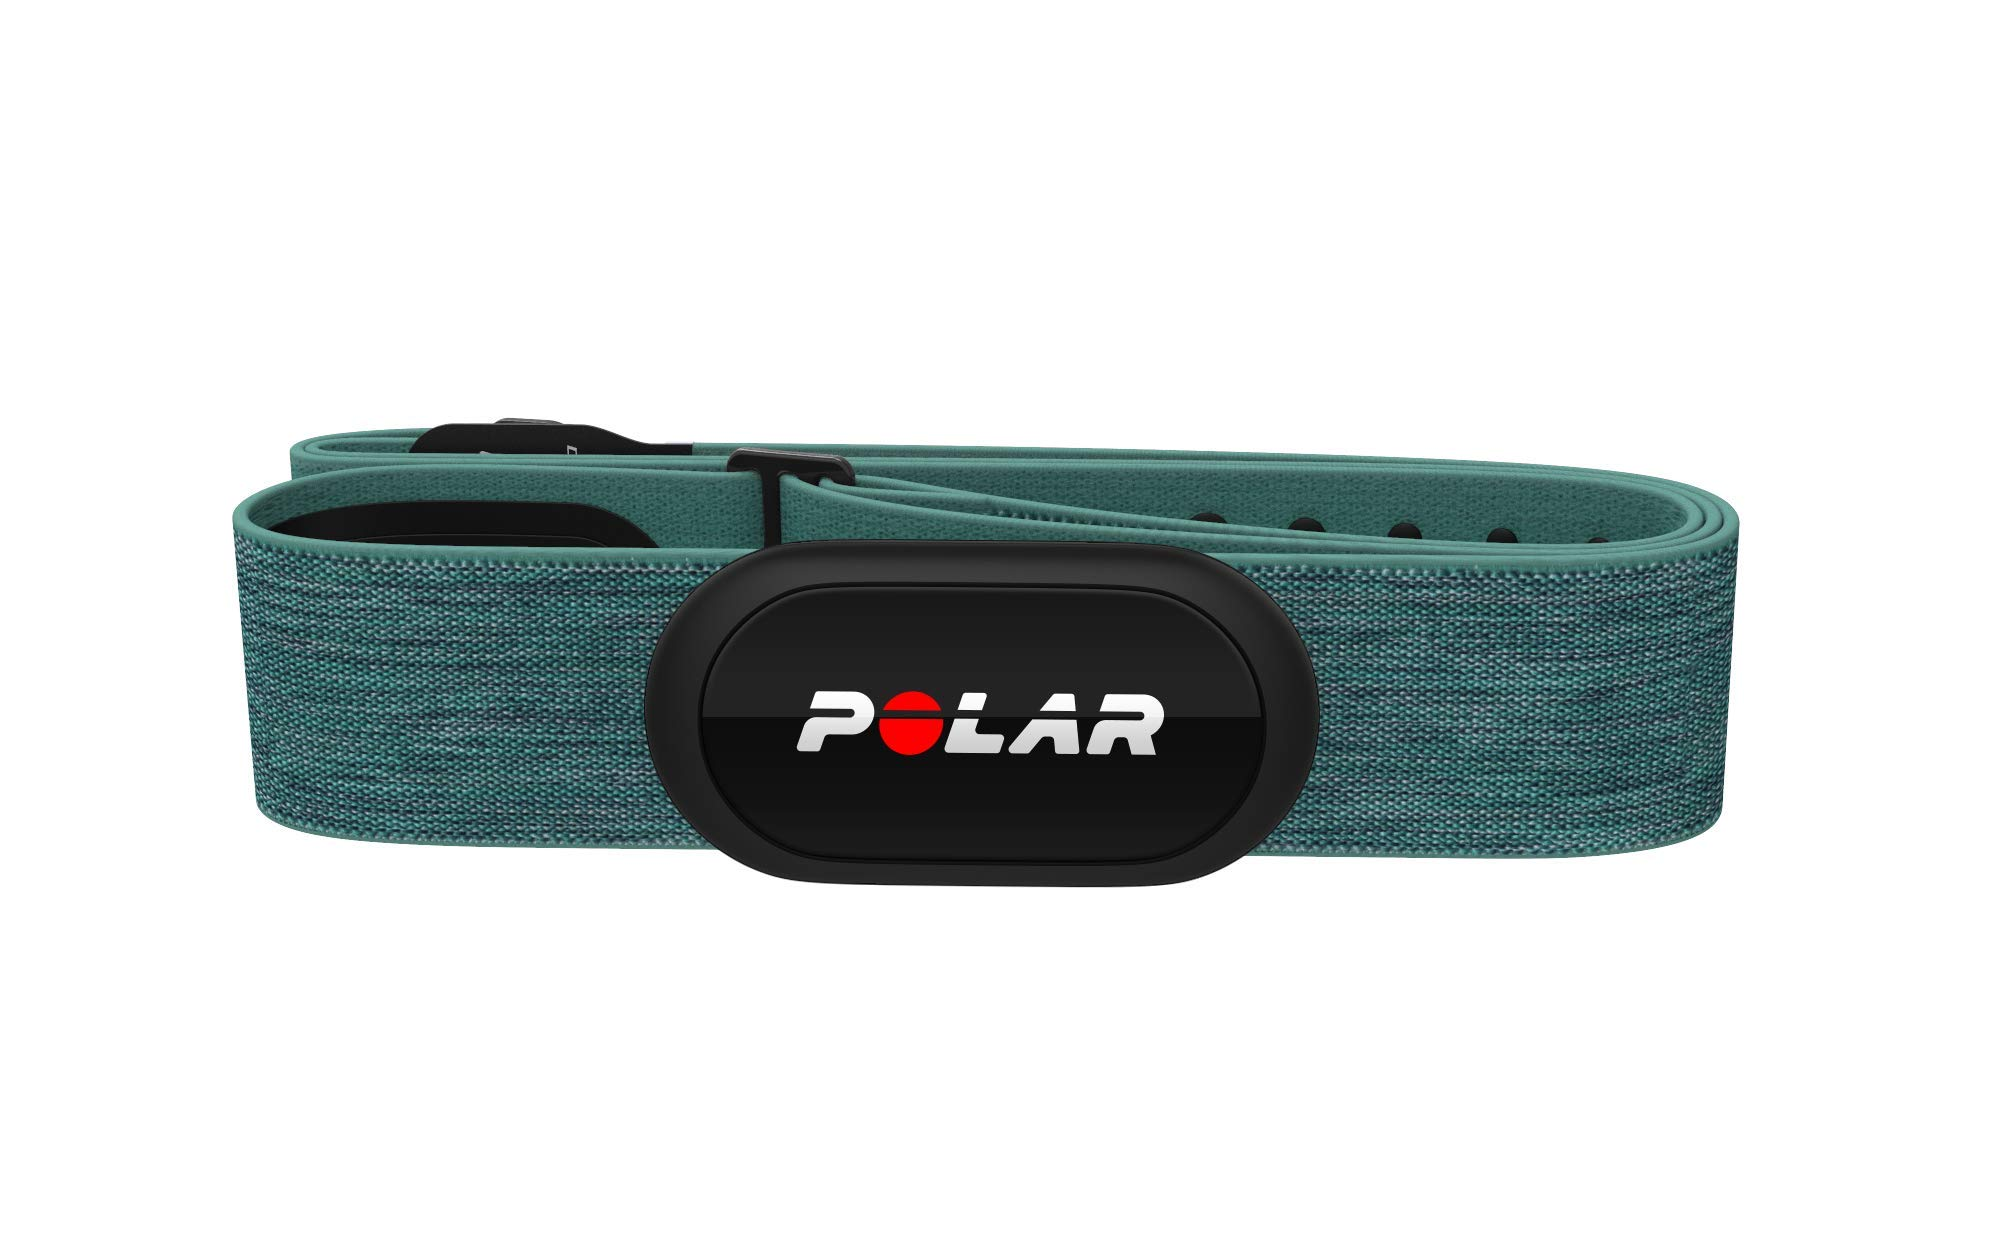 Polar H10 Heart Rate Monitor for Men and Women - ANT +, Bluetooth, ECG/EKG - Waterproof HR Sensor with Chest Strap by Polar